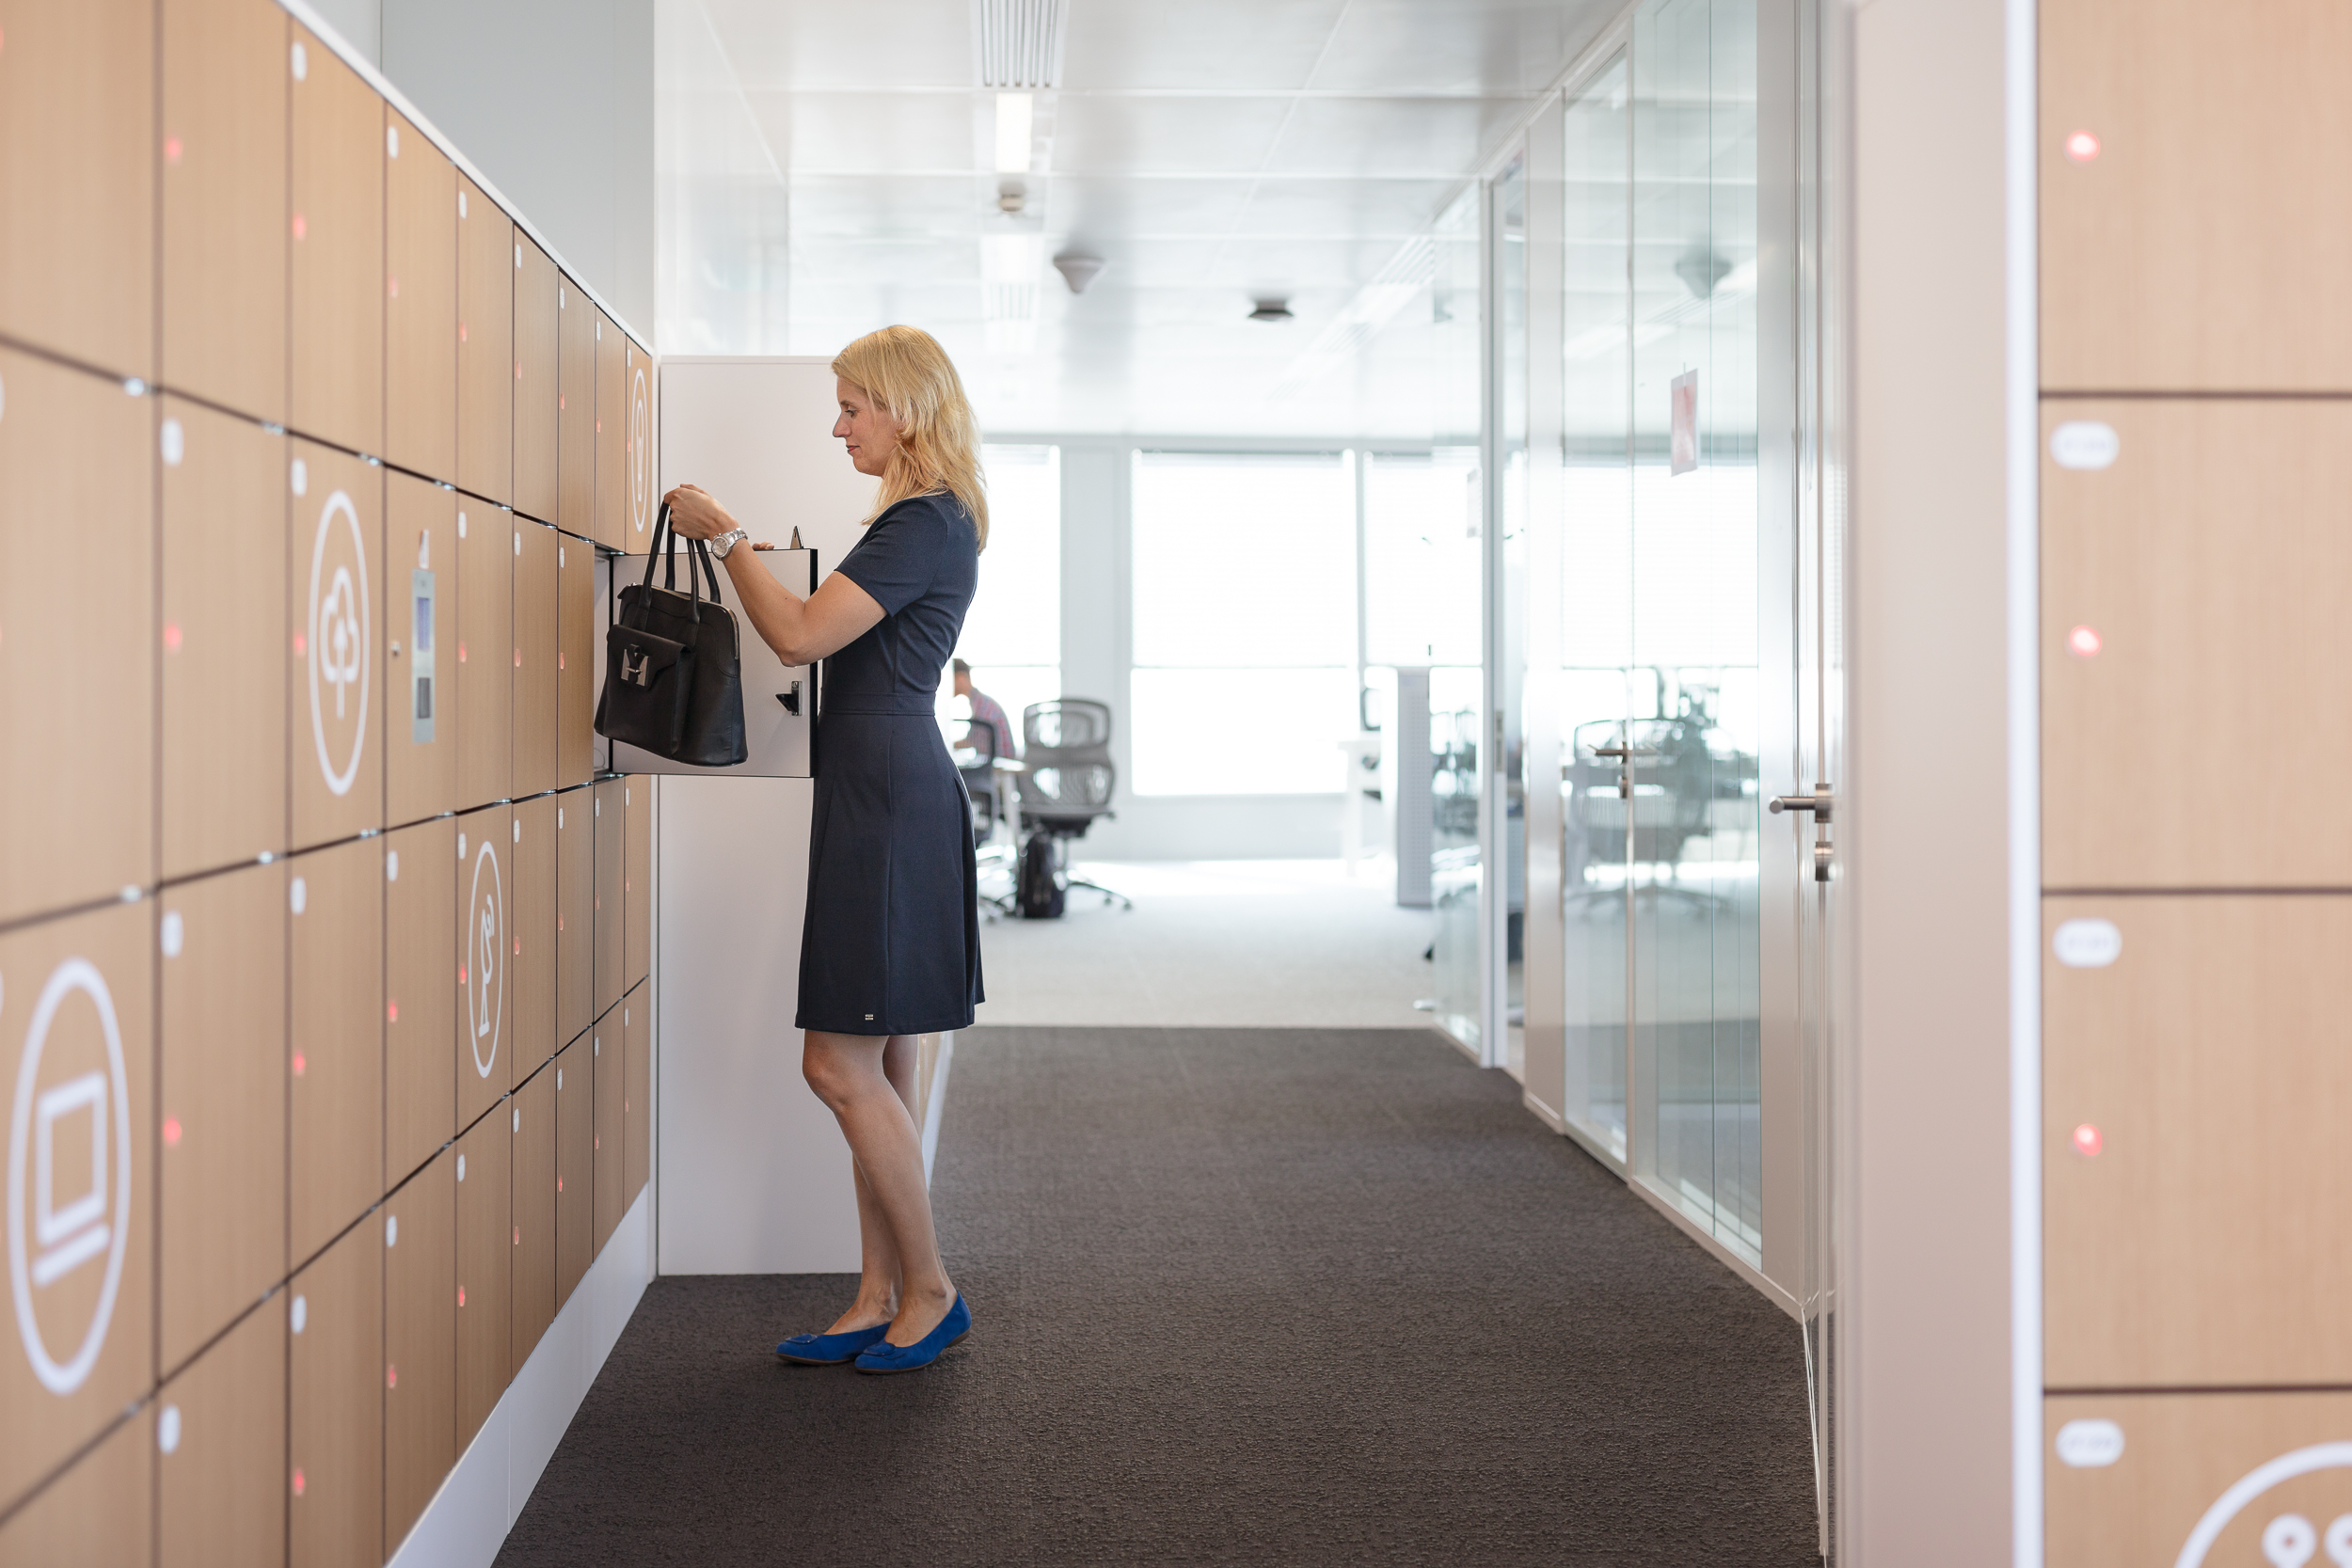 Smart Workplace Lockers - Top 10 Features that can Make or Break your Workplace Storage